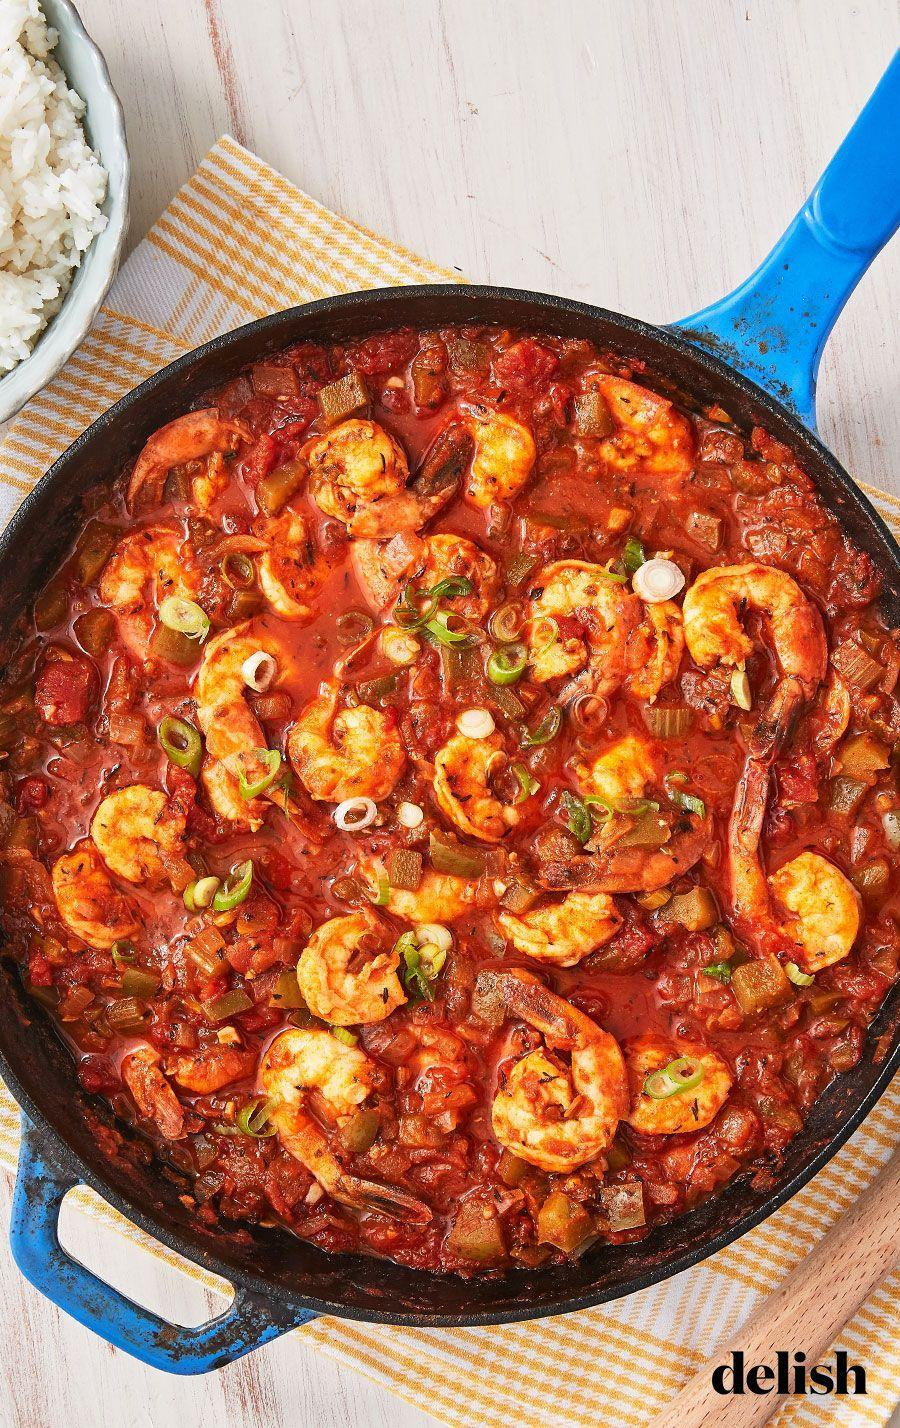 """<p>This saucy Shrimp Creole will transport you to the balcony-lined streets of New Orleans.</p><p>Get the recipe from <a href=""""https://www.delish.com/cooking/recipe-ideas/a26470763/easy-shrimp-creole-recipe/"""" rel=""""nofollow noopener"""" target=""""_blank"""" data-ylk=""""slk:Delish"""" class=""""link rapid-noclick-resp"""">Delish</a>.</p>"""